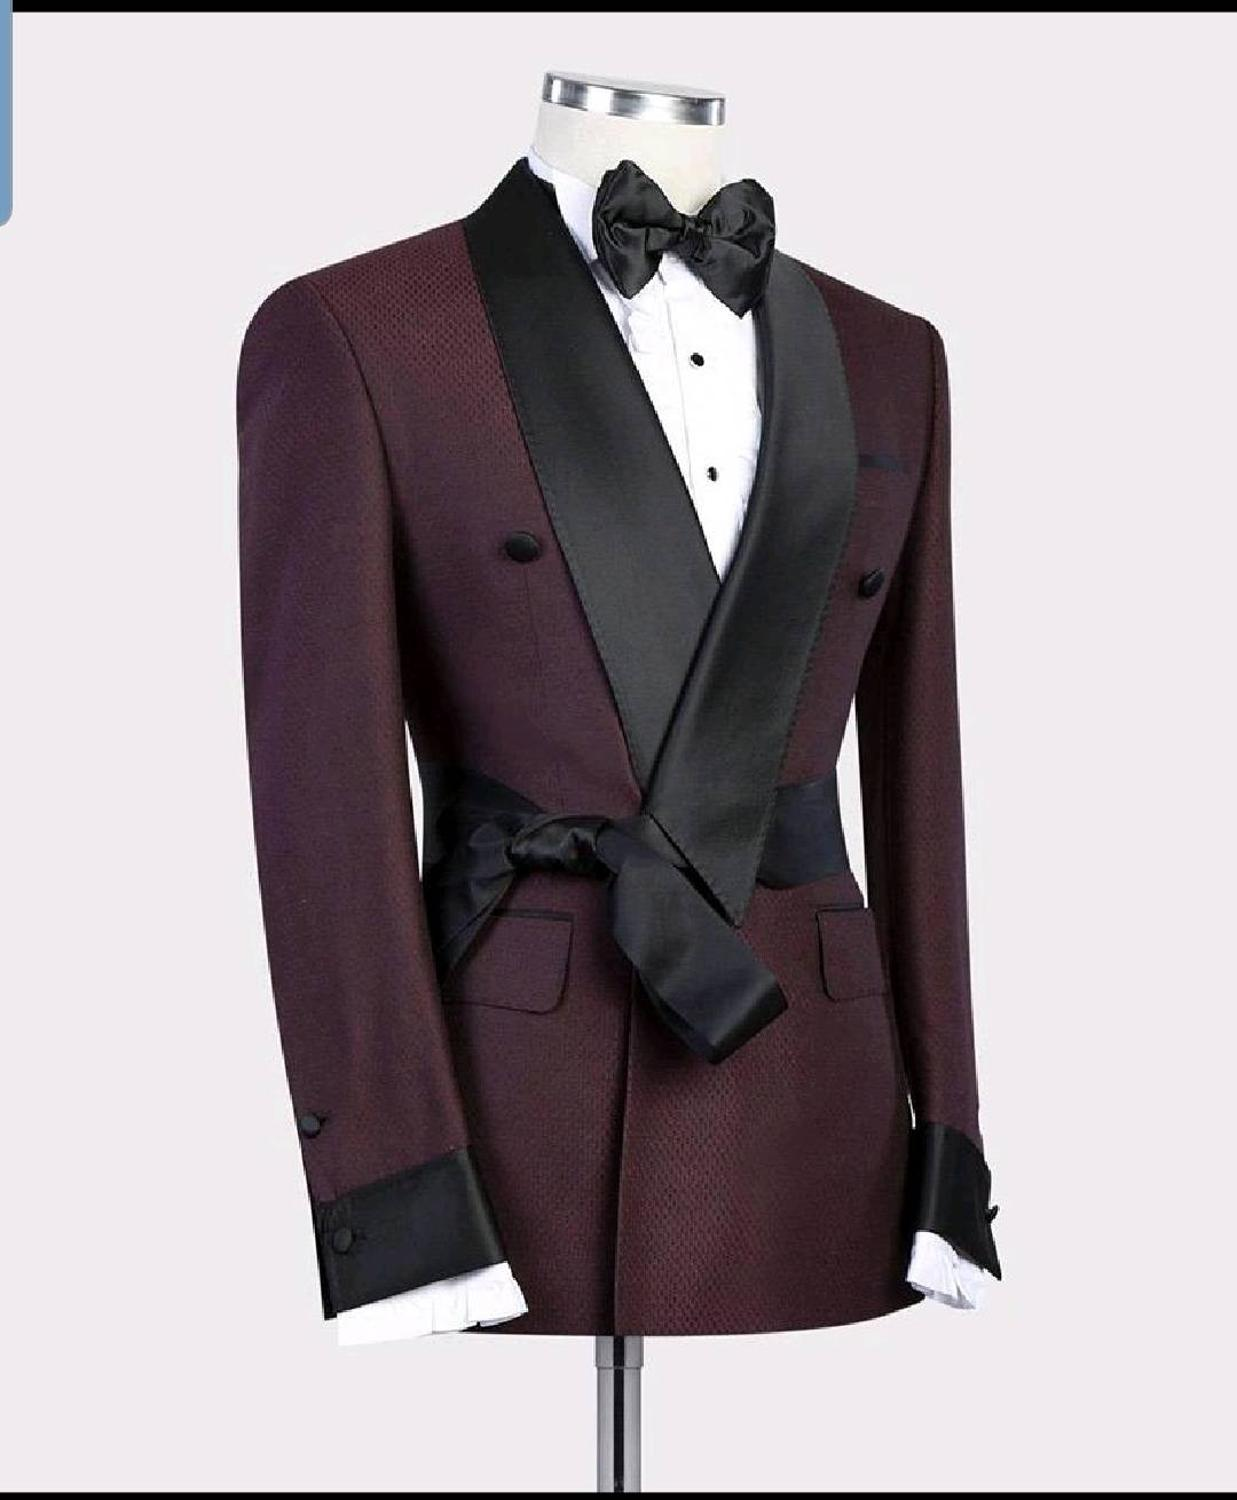 Image 2 - 2019 New Burgundy Red With Black Lapel Men's Slim Fit Formal Suits Custom Made 2 Pieces Wedding Tuxedos Suits Jacket Pants-in Suits from Men's Clothing